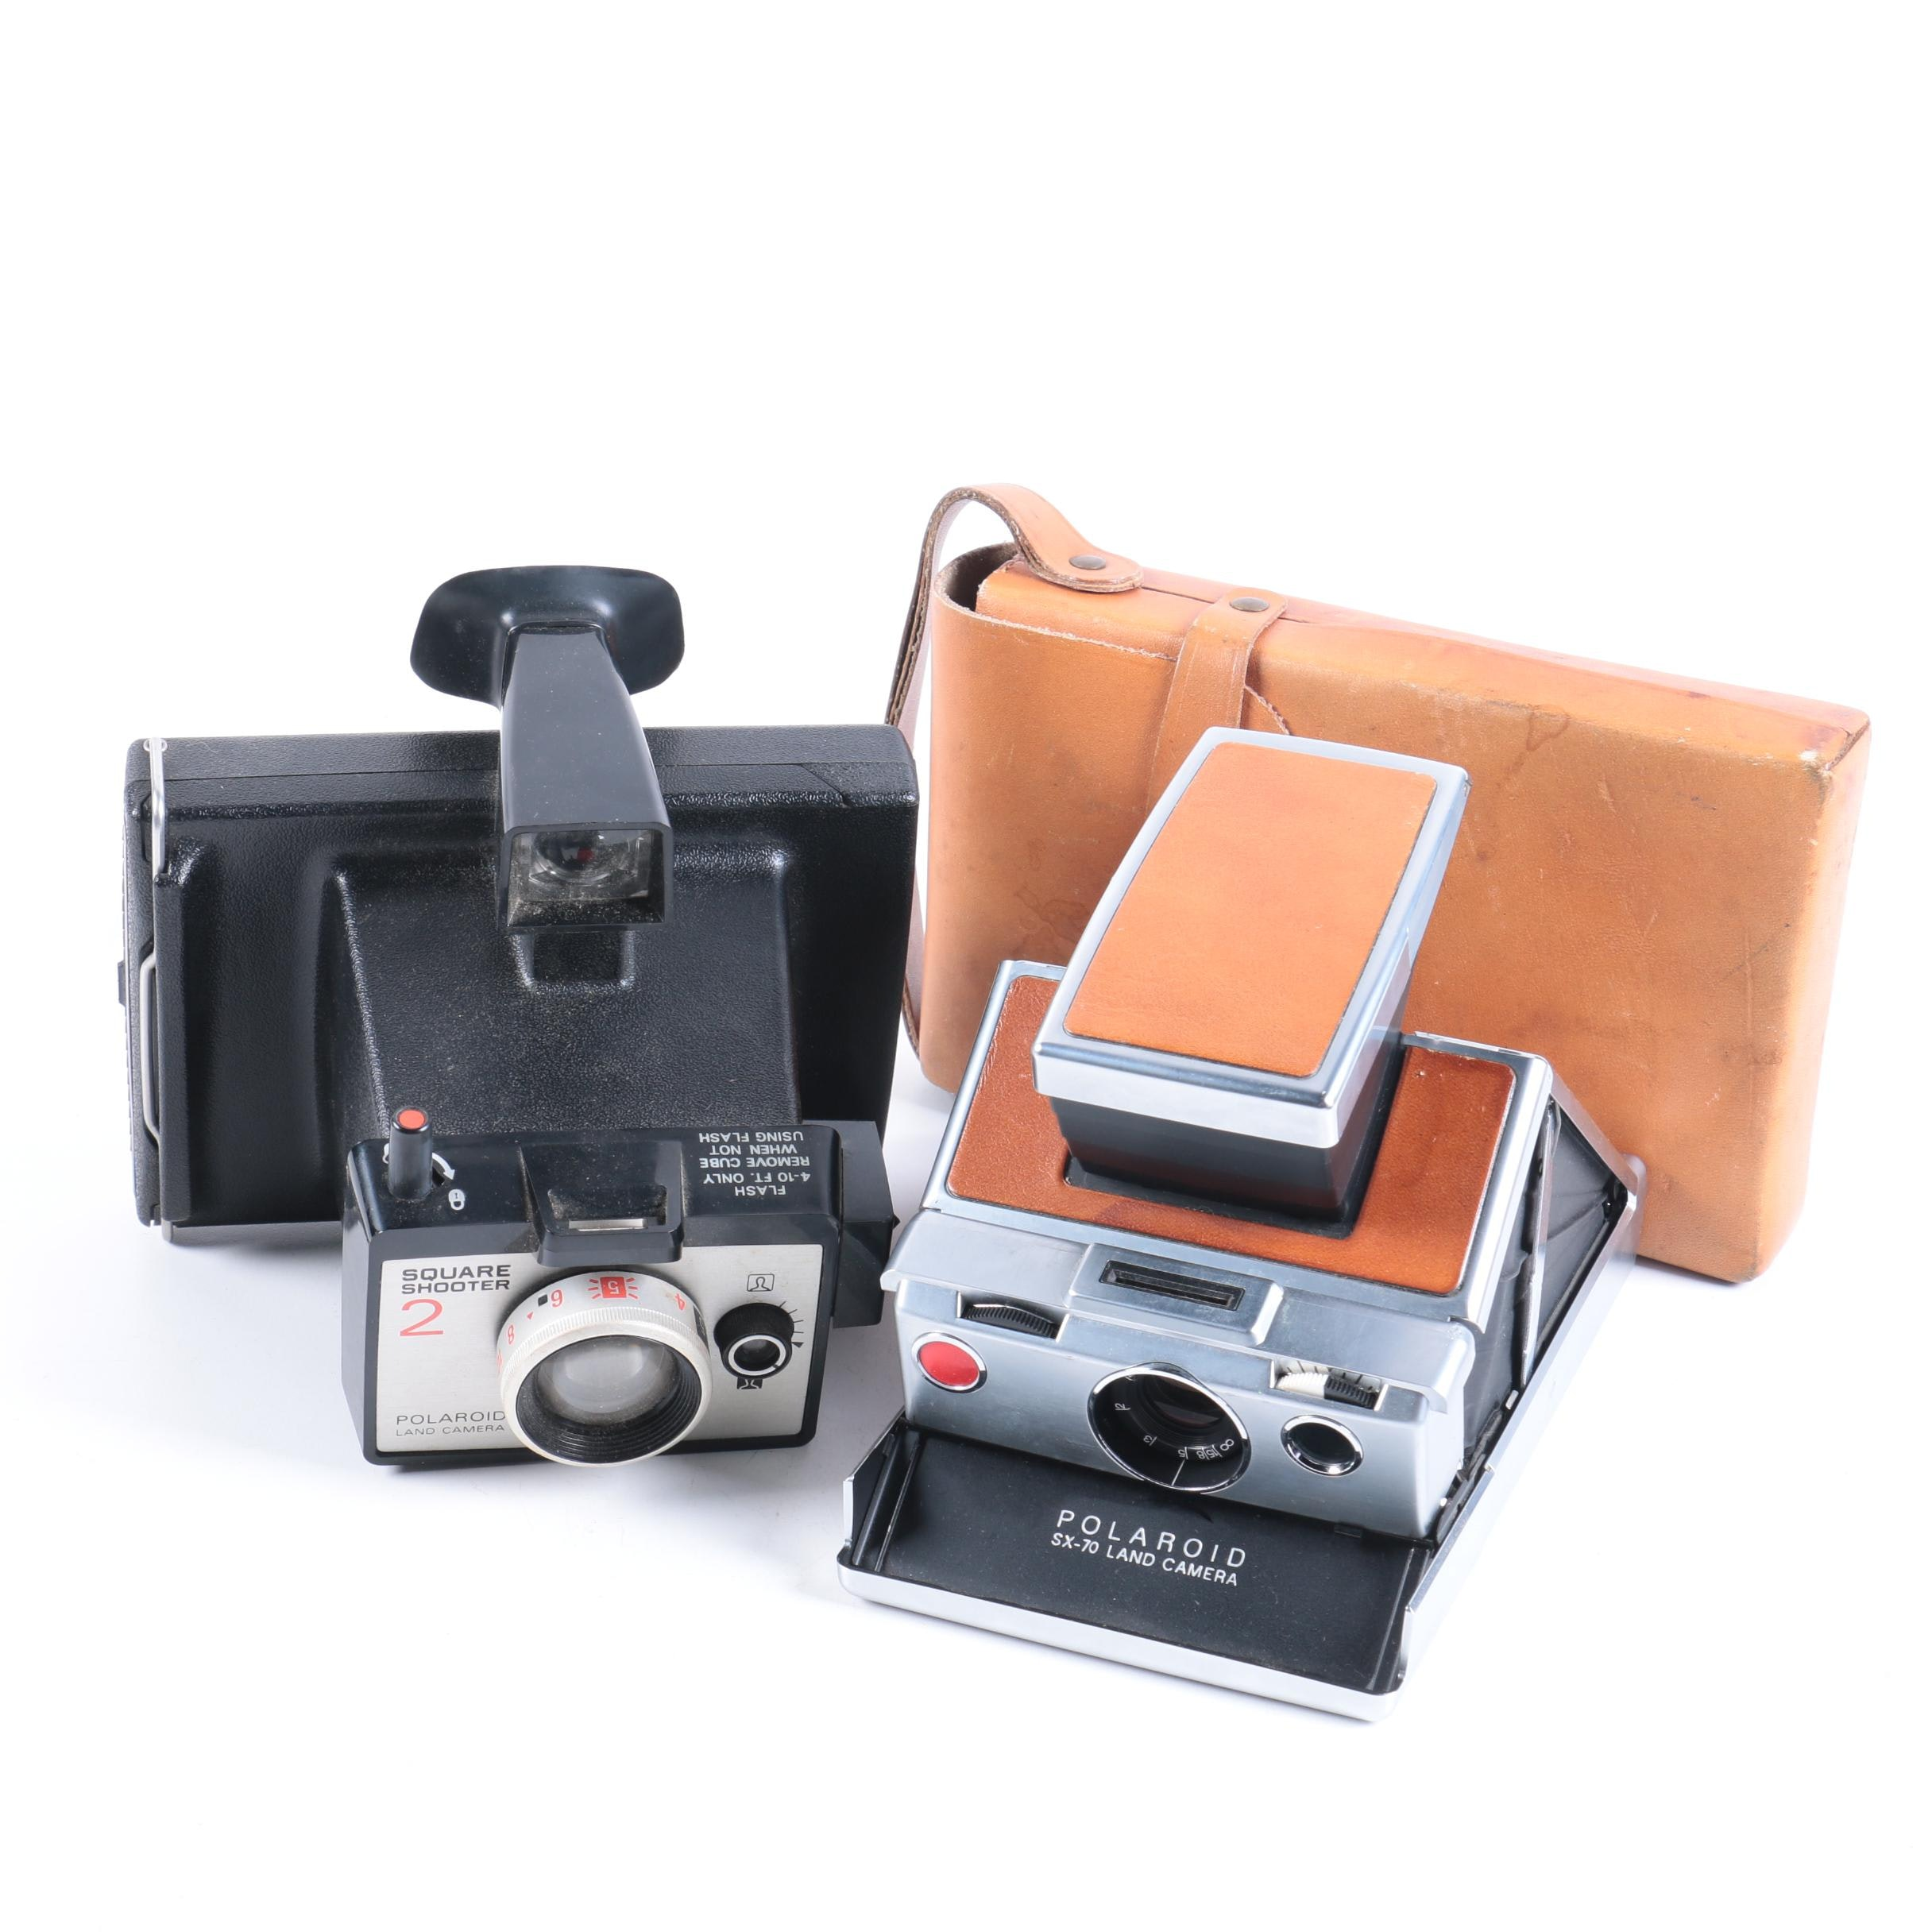 Polaroid Square Shooter 2 and SX-70 Land Cameras